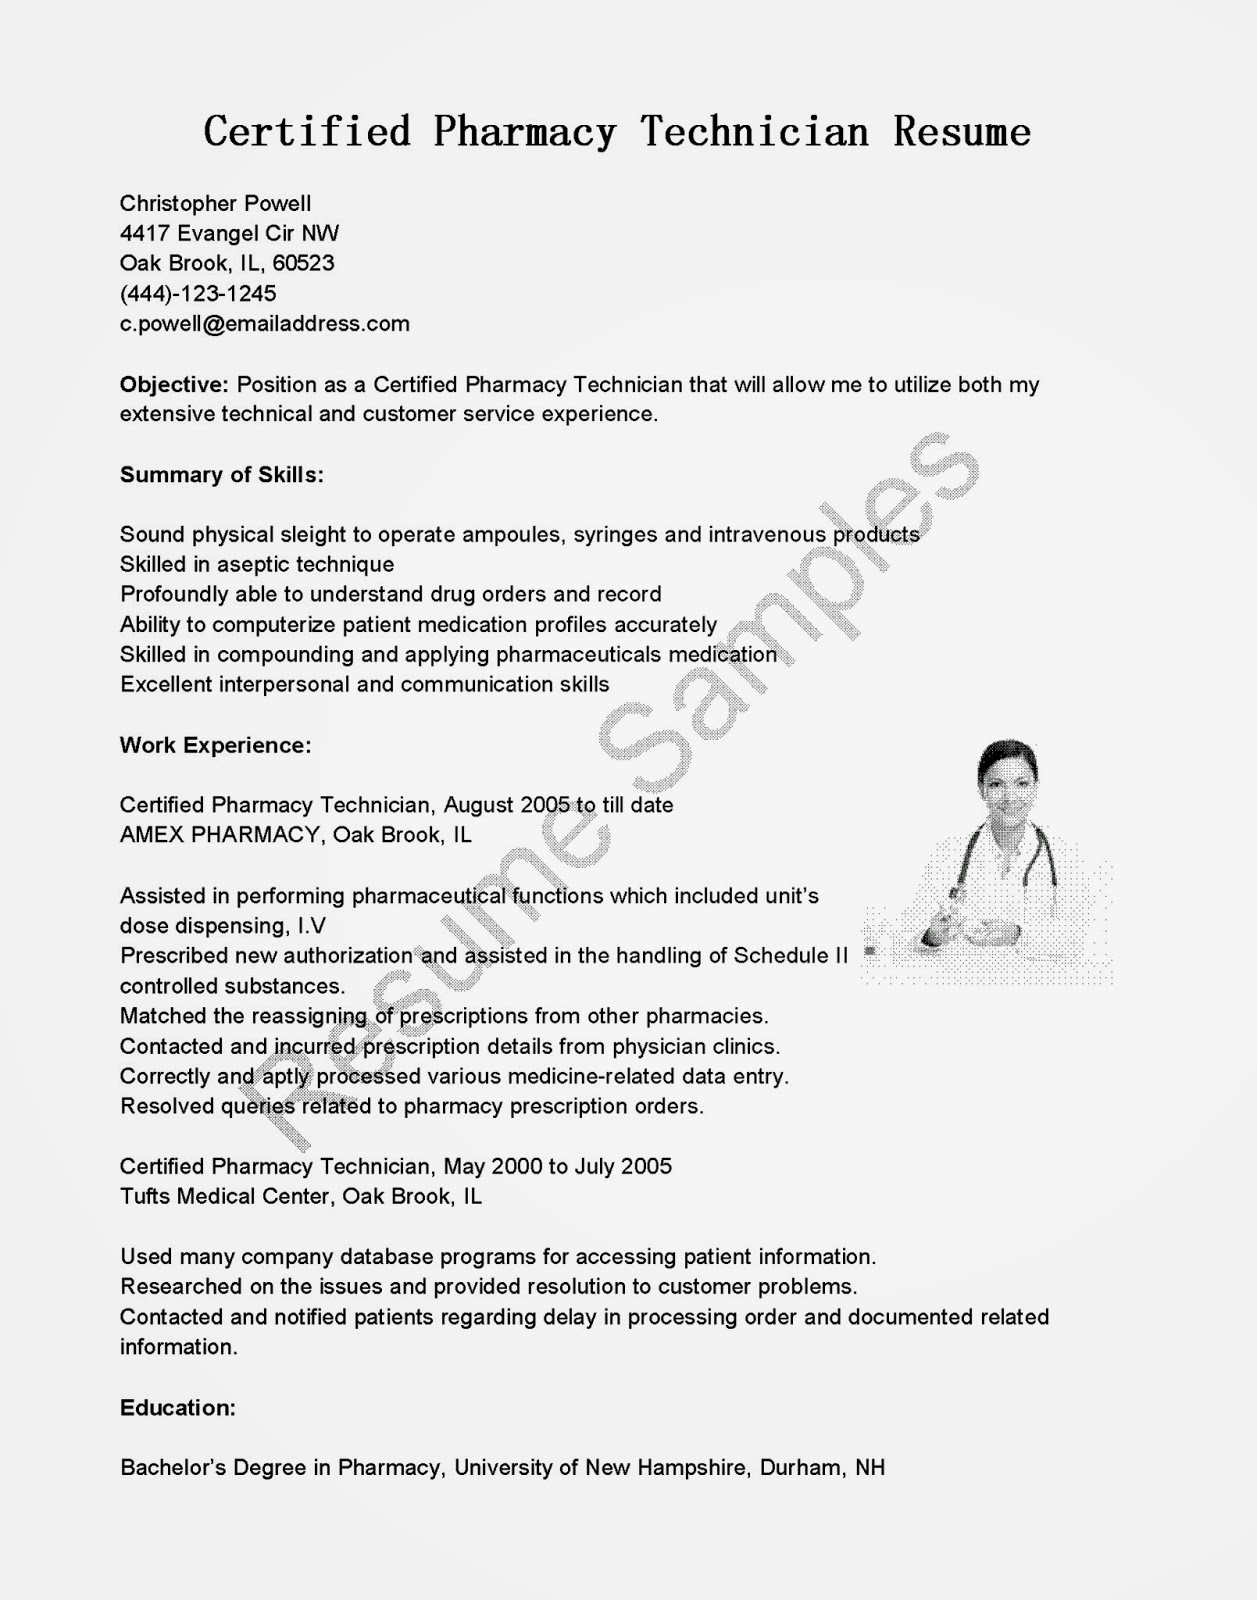 pharmacy tech resume resume samples certified pharmacy technician resume sample 23961 | Certified%2BPharmacy%2BTechnician%2BResume